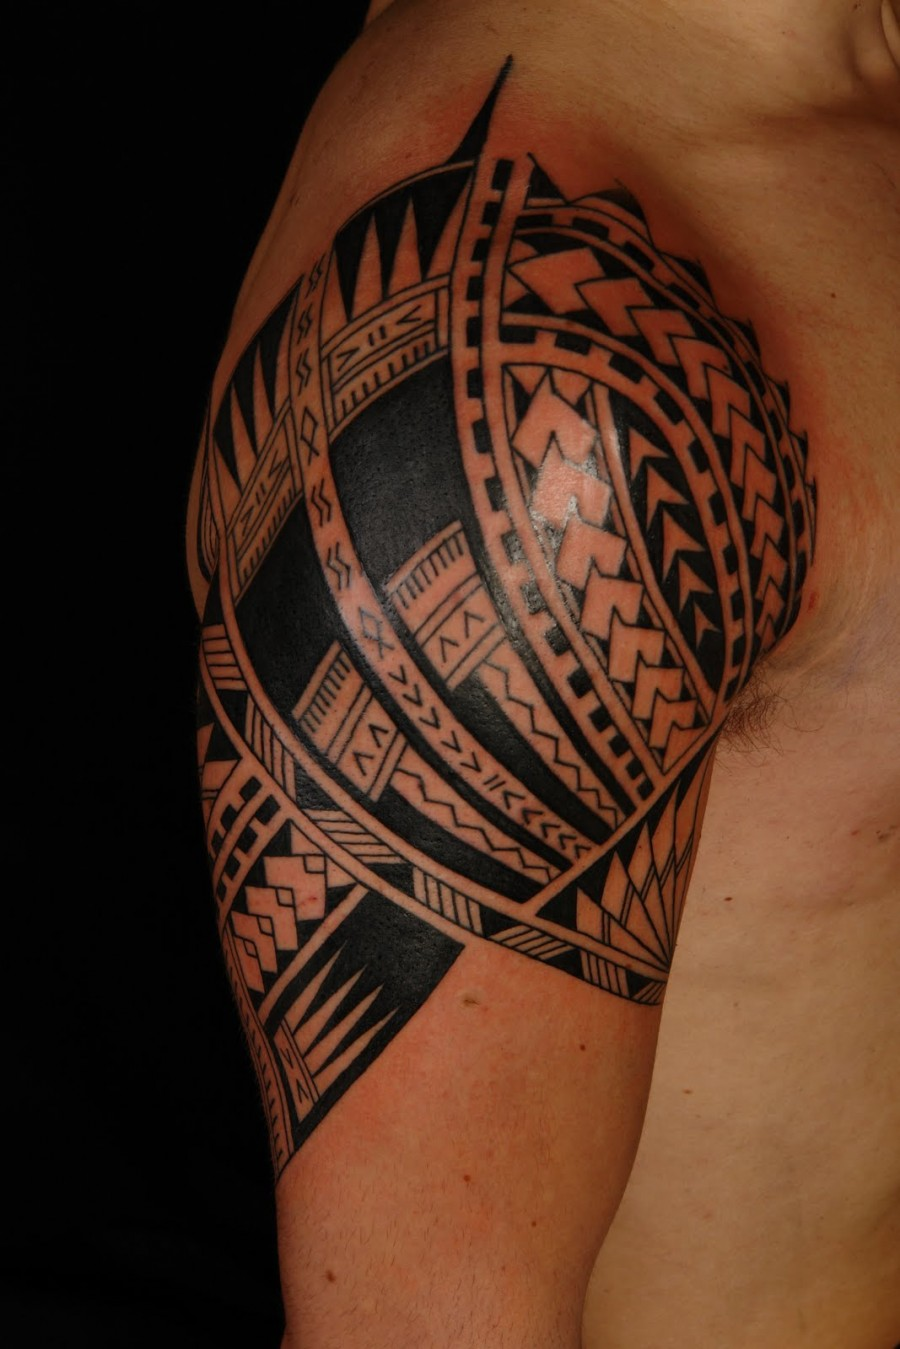 e2a1304e9b Awesome Samoan Sleeve Tatto on upper arm - | TattooMagz › Tattoo ...